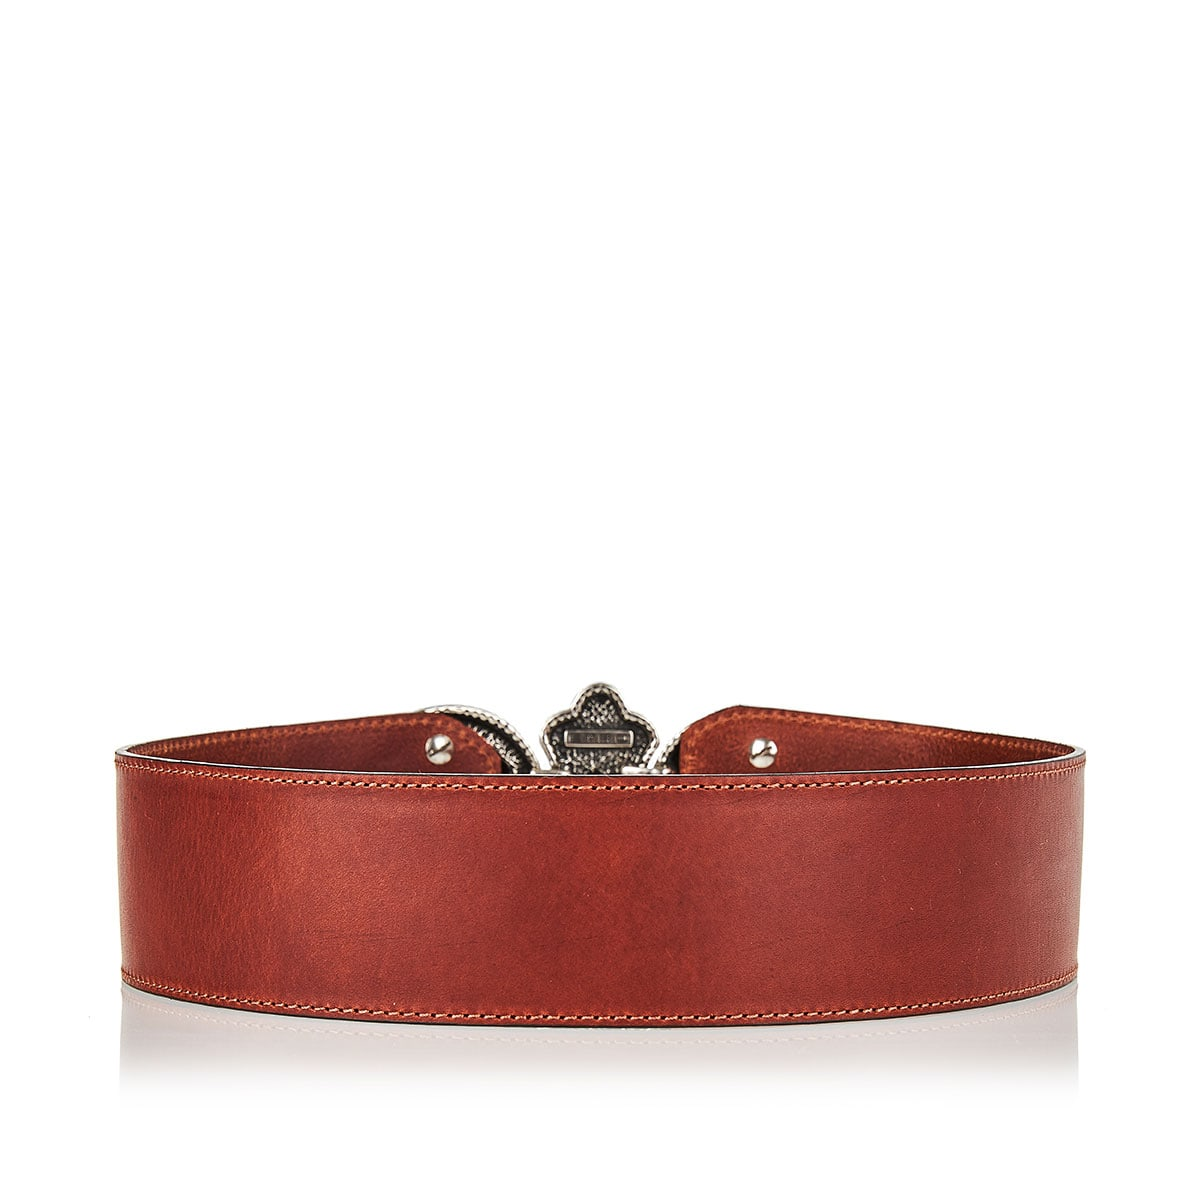 Leather belt with jeweled paisley buckle